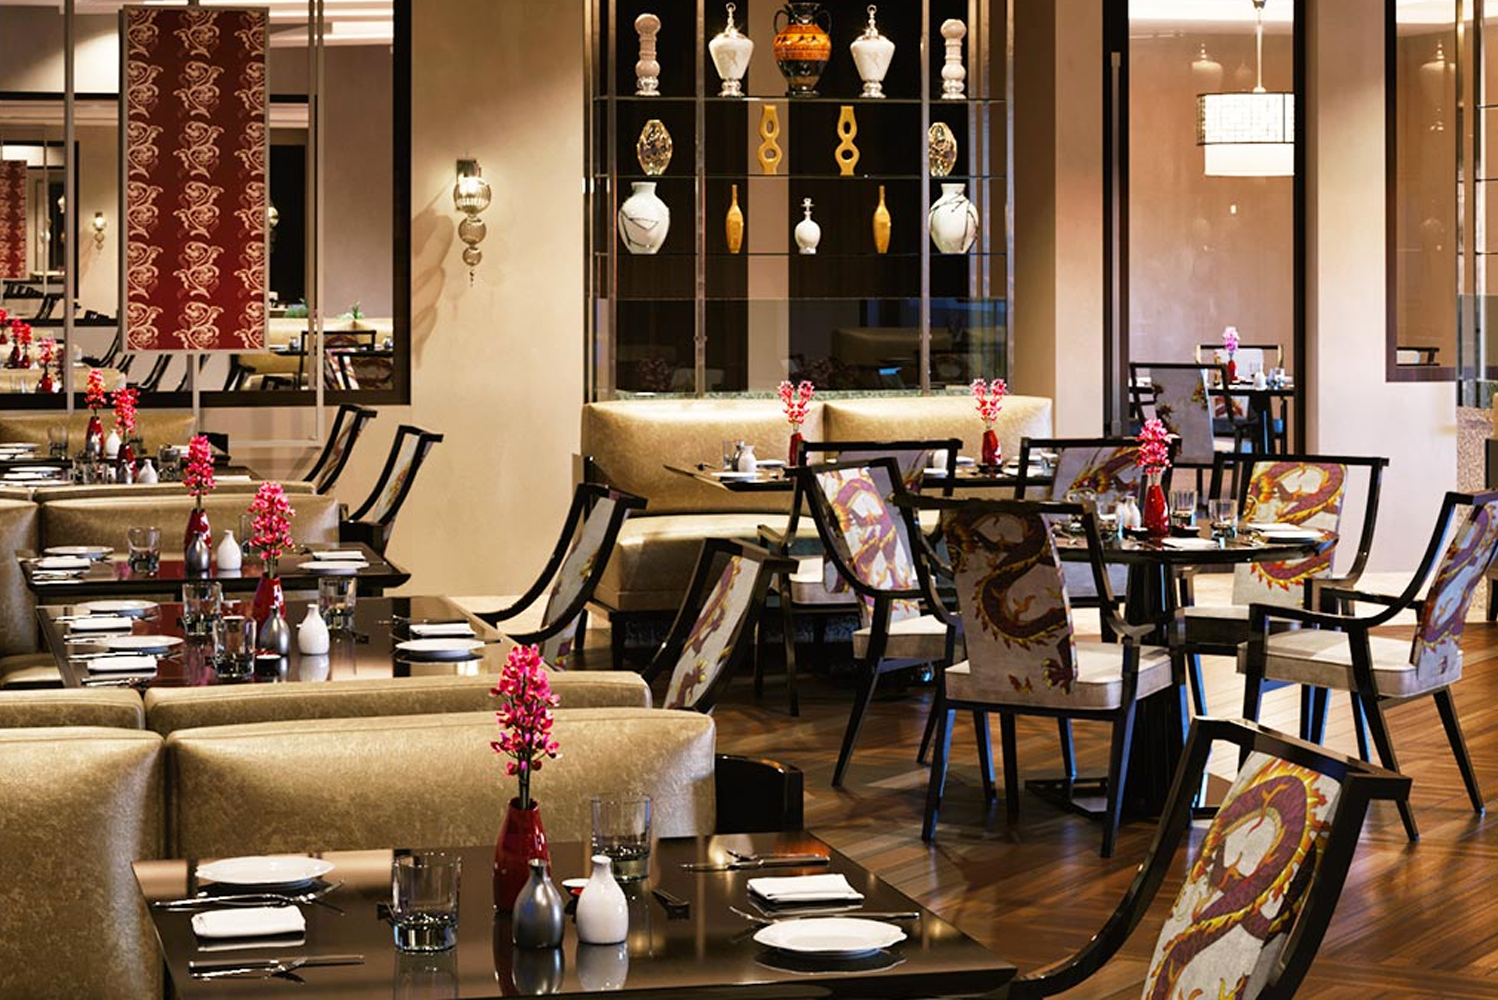 Restaurants at the Oberoi, New Delhi include the completely redesigned threesixty° restaurant; Omya Indian restaurant; Baoshuan rooftop Chinese restaurant; and open-air rooftop bar Cirrus9.